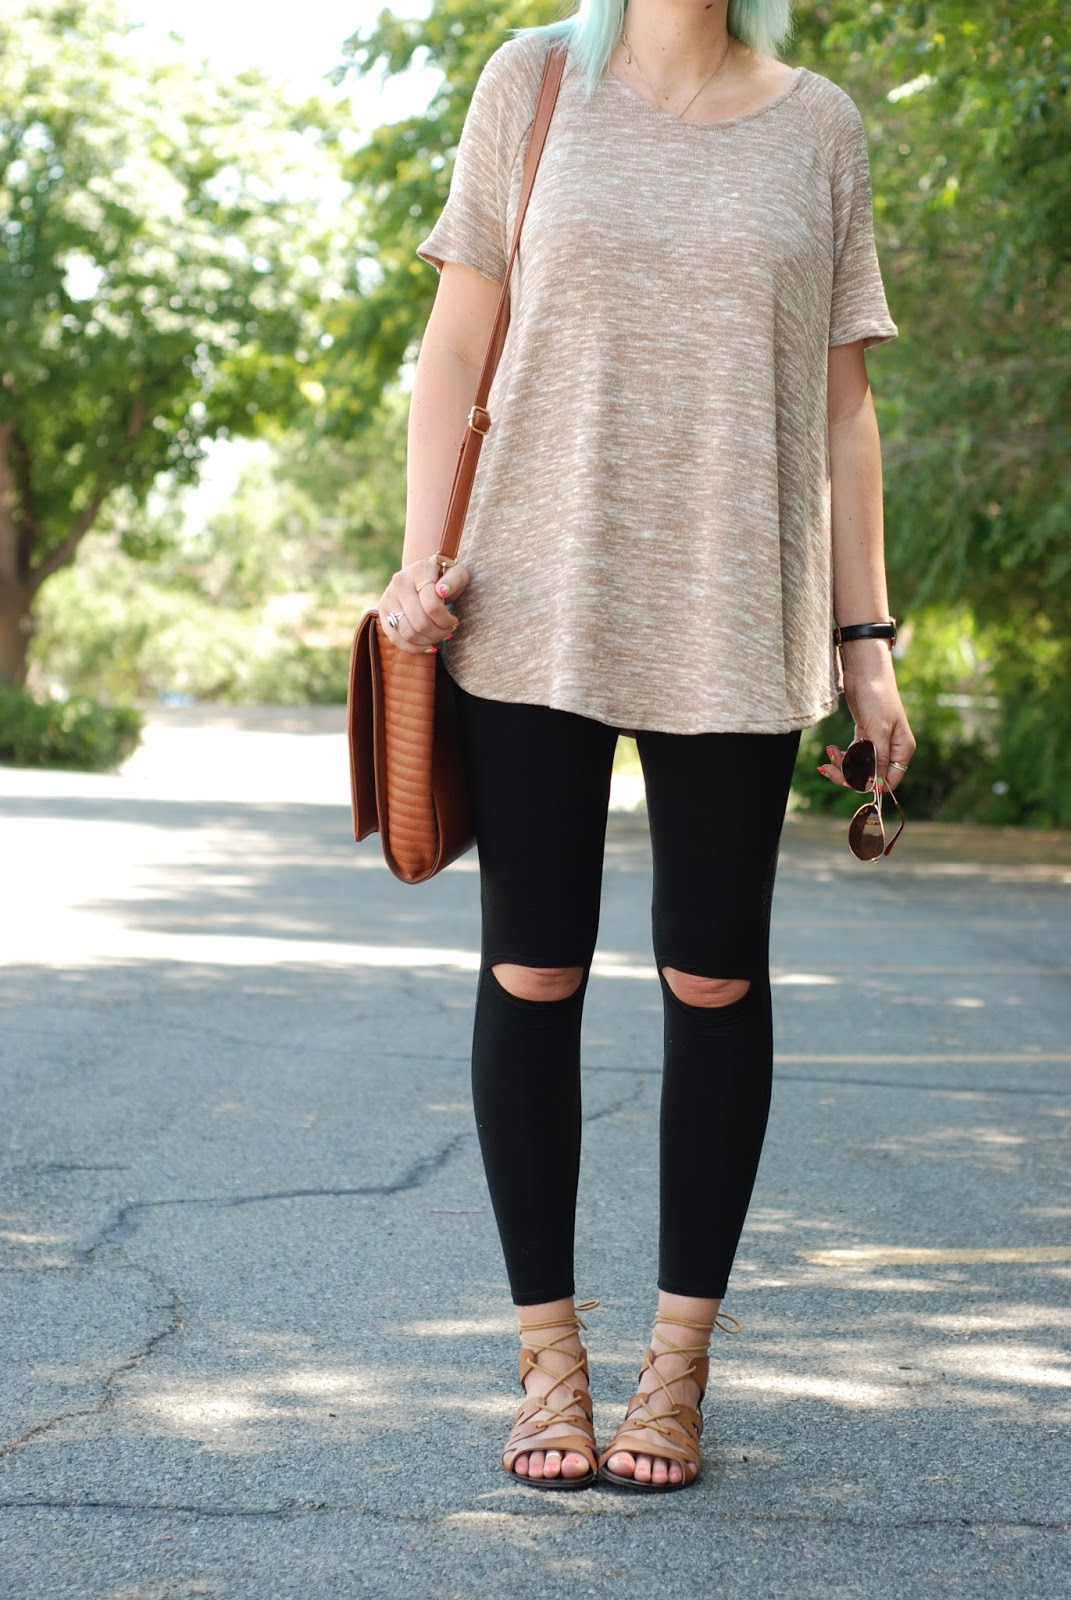 Ripped Knee Leggings, Sidney Clark Designs, Utah Fashion Blogger